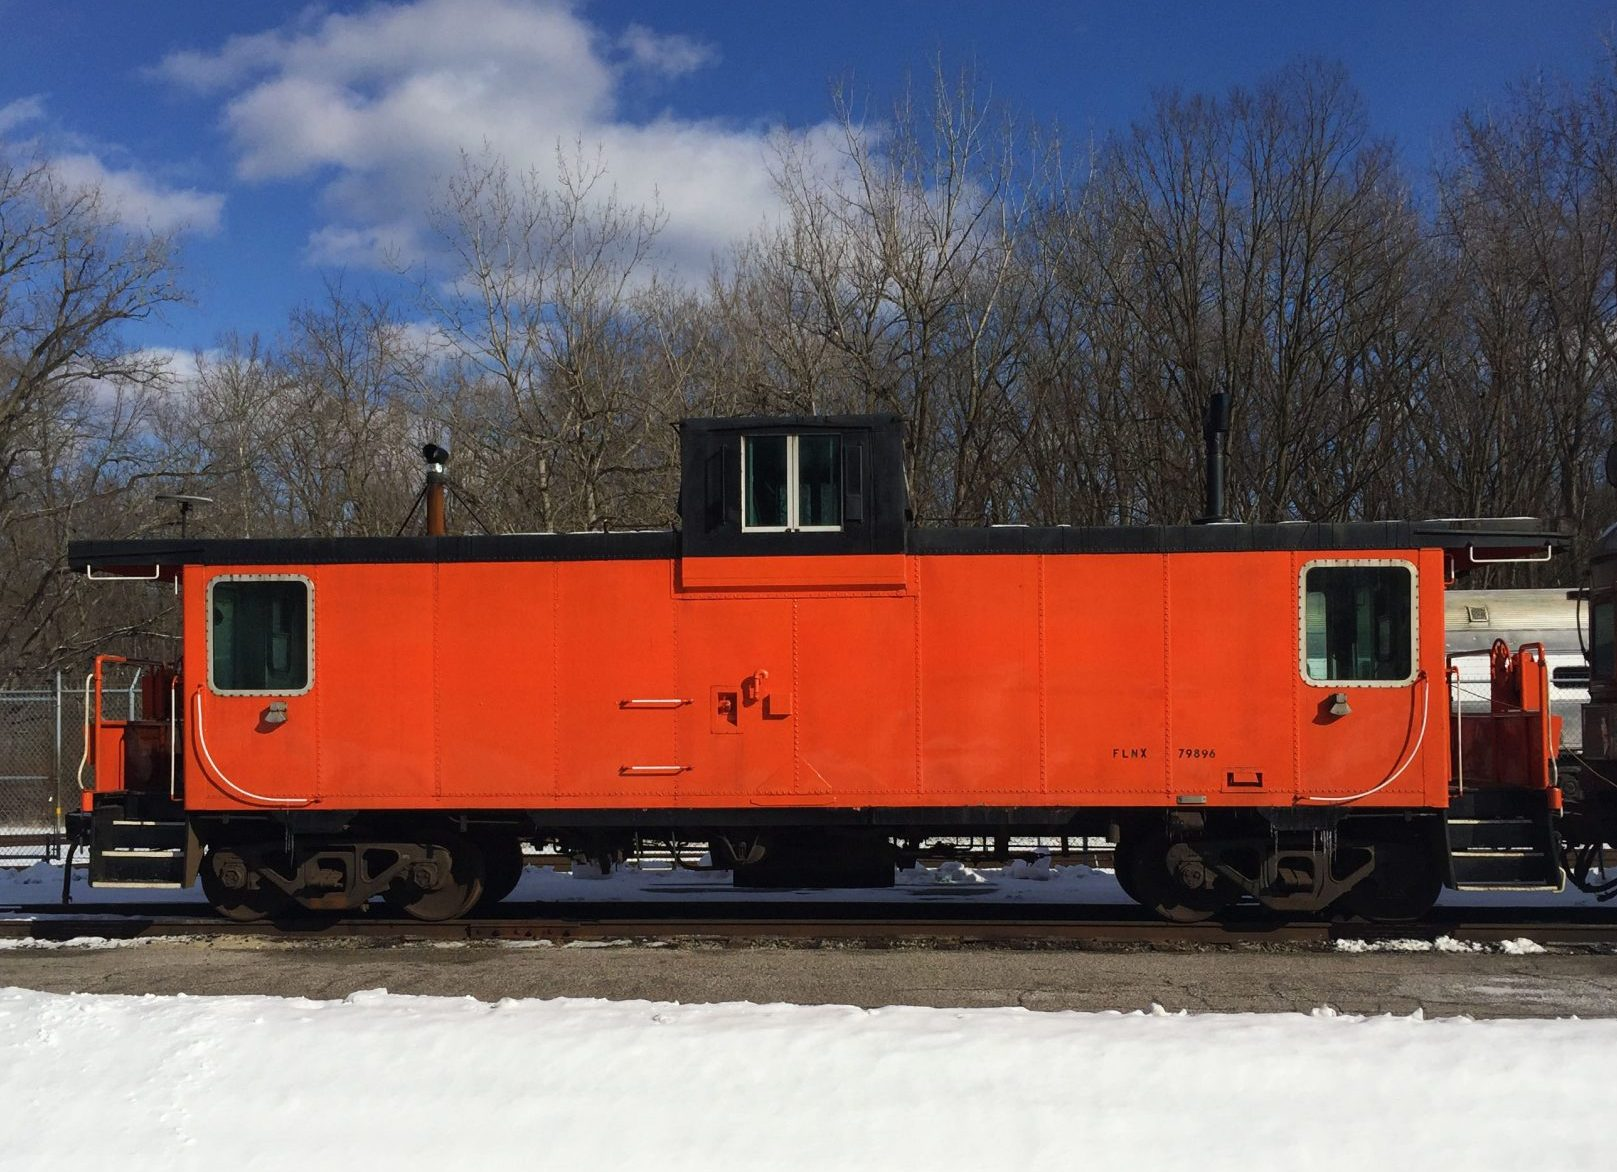 Warm Up On A Caboose Ride - Cuyahoga Valley Scenic Railroad